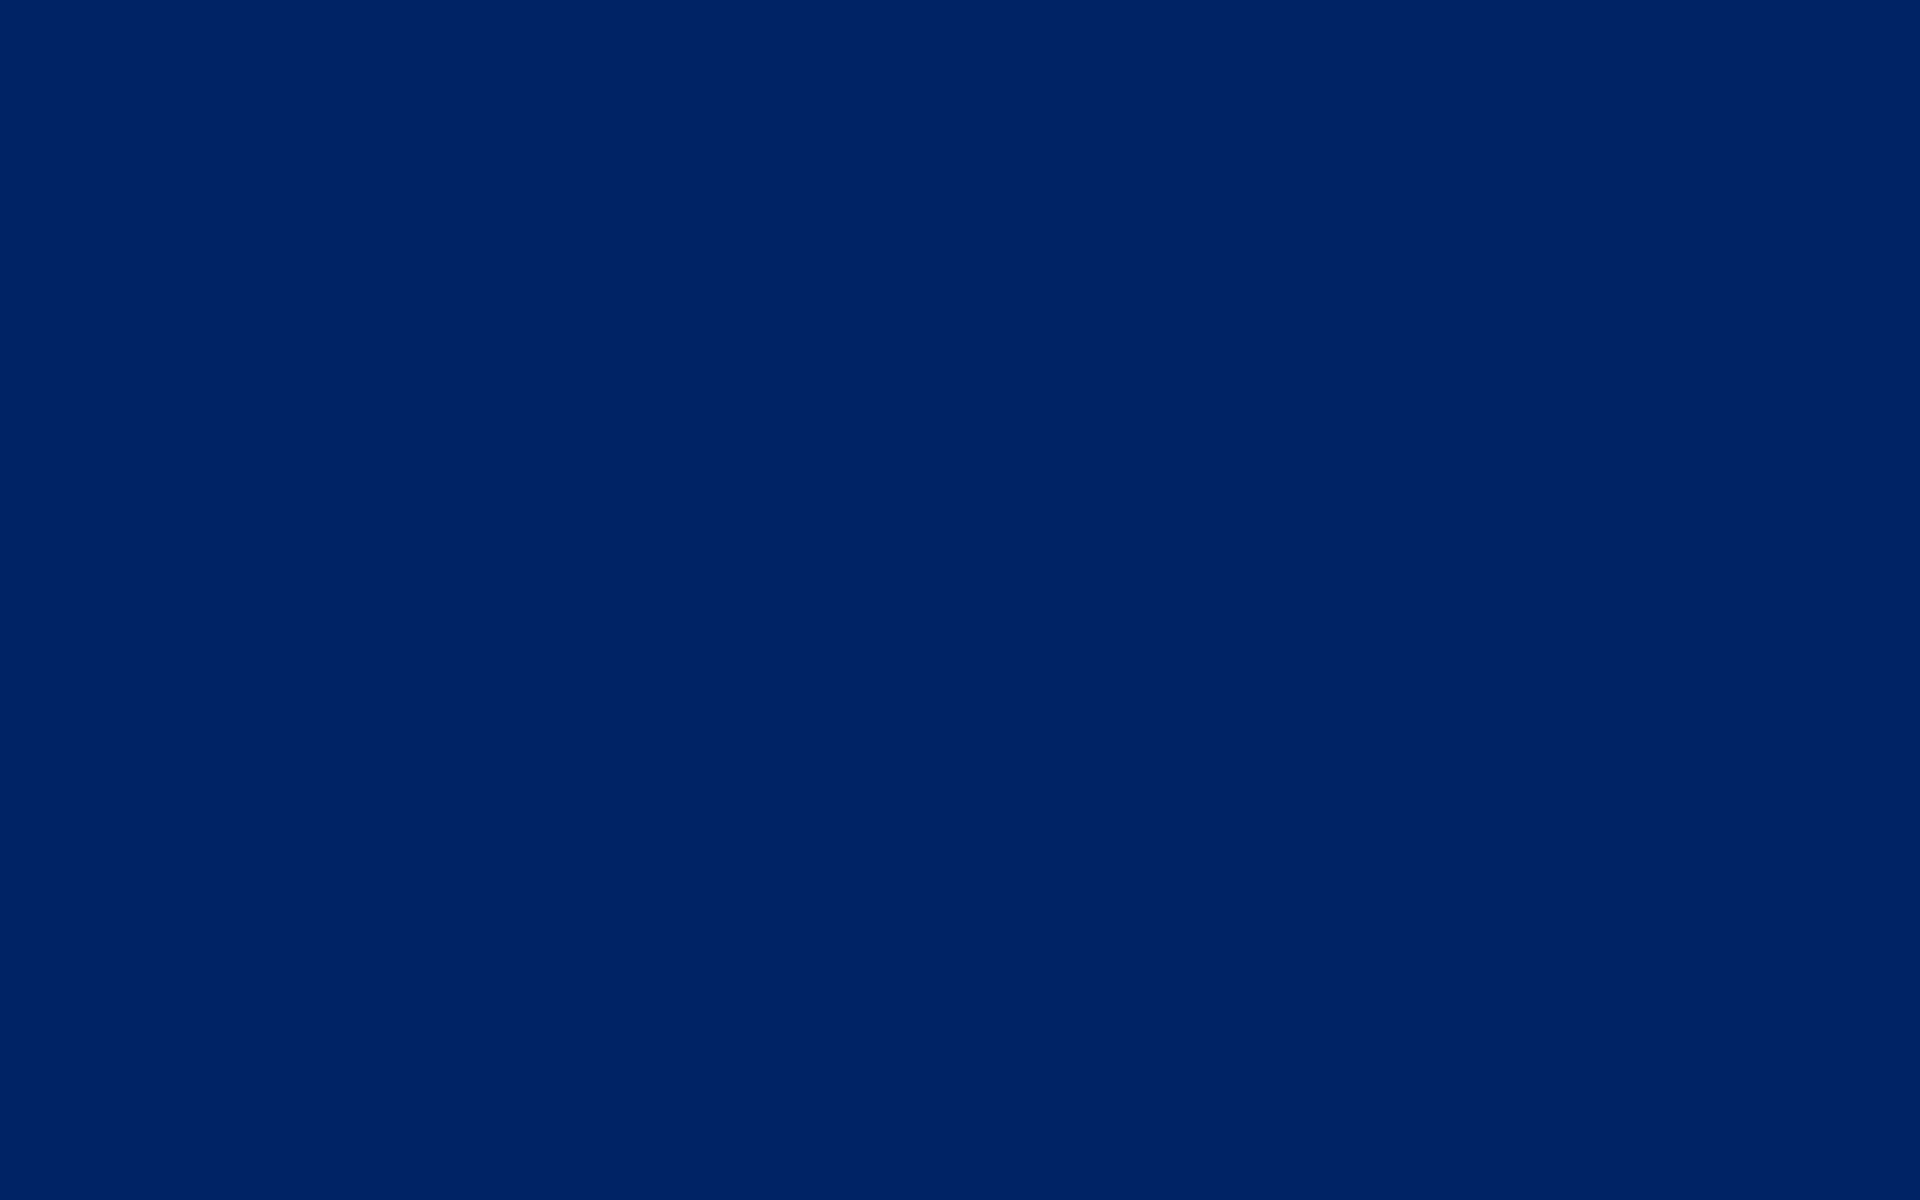 Royal Blue wallpaper – wallpaper design for your device